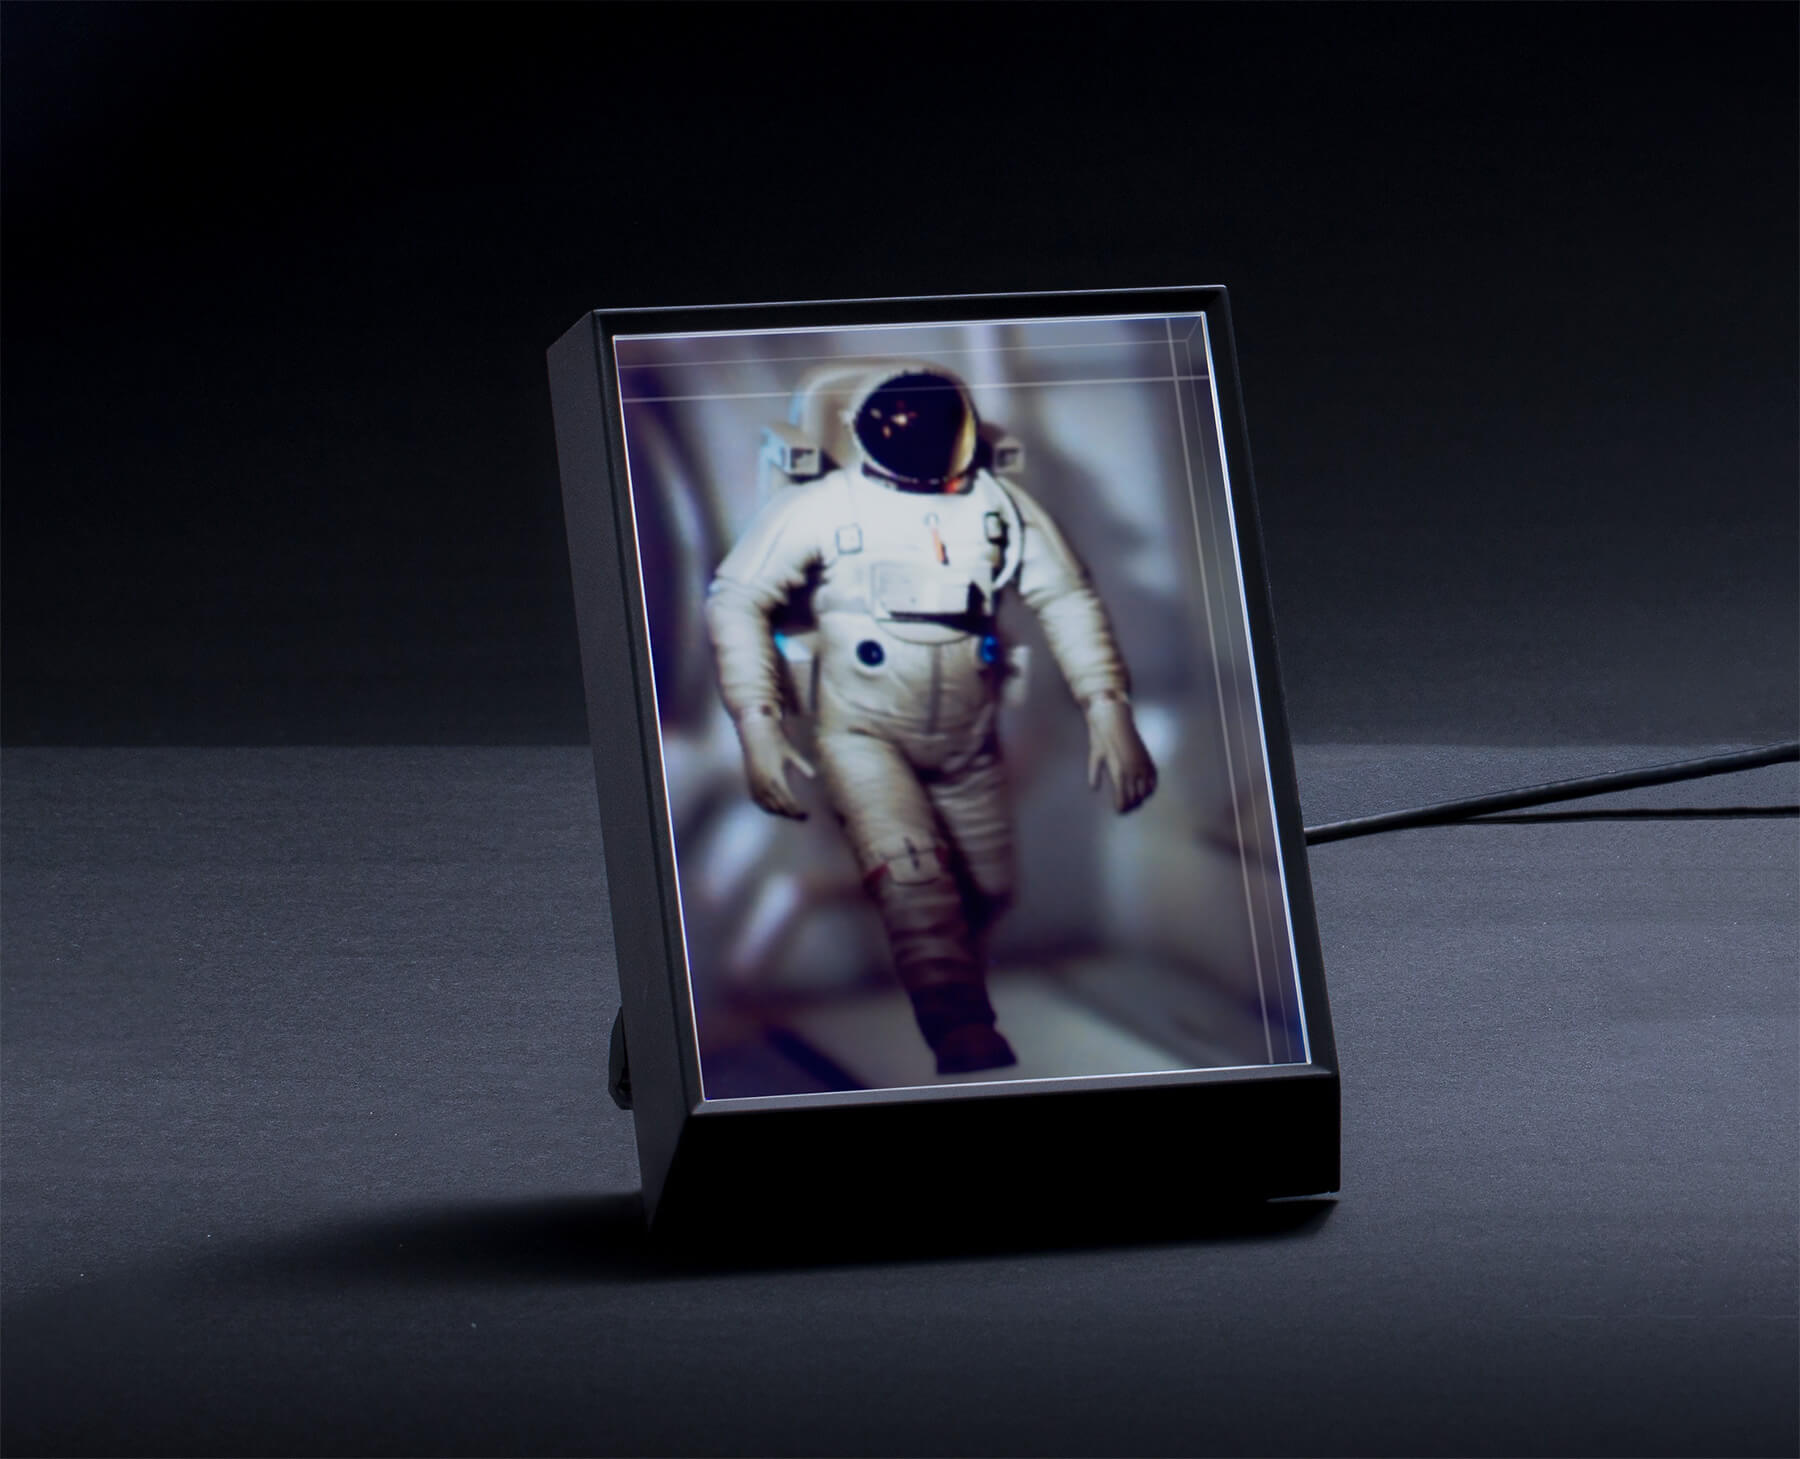 An astronaut walking in the Looking Glass Portrait holographic display